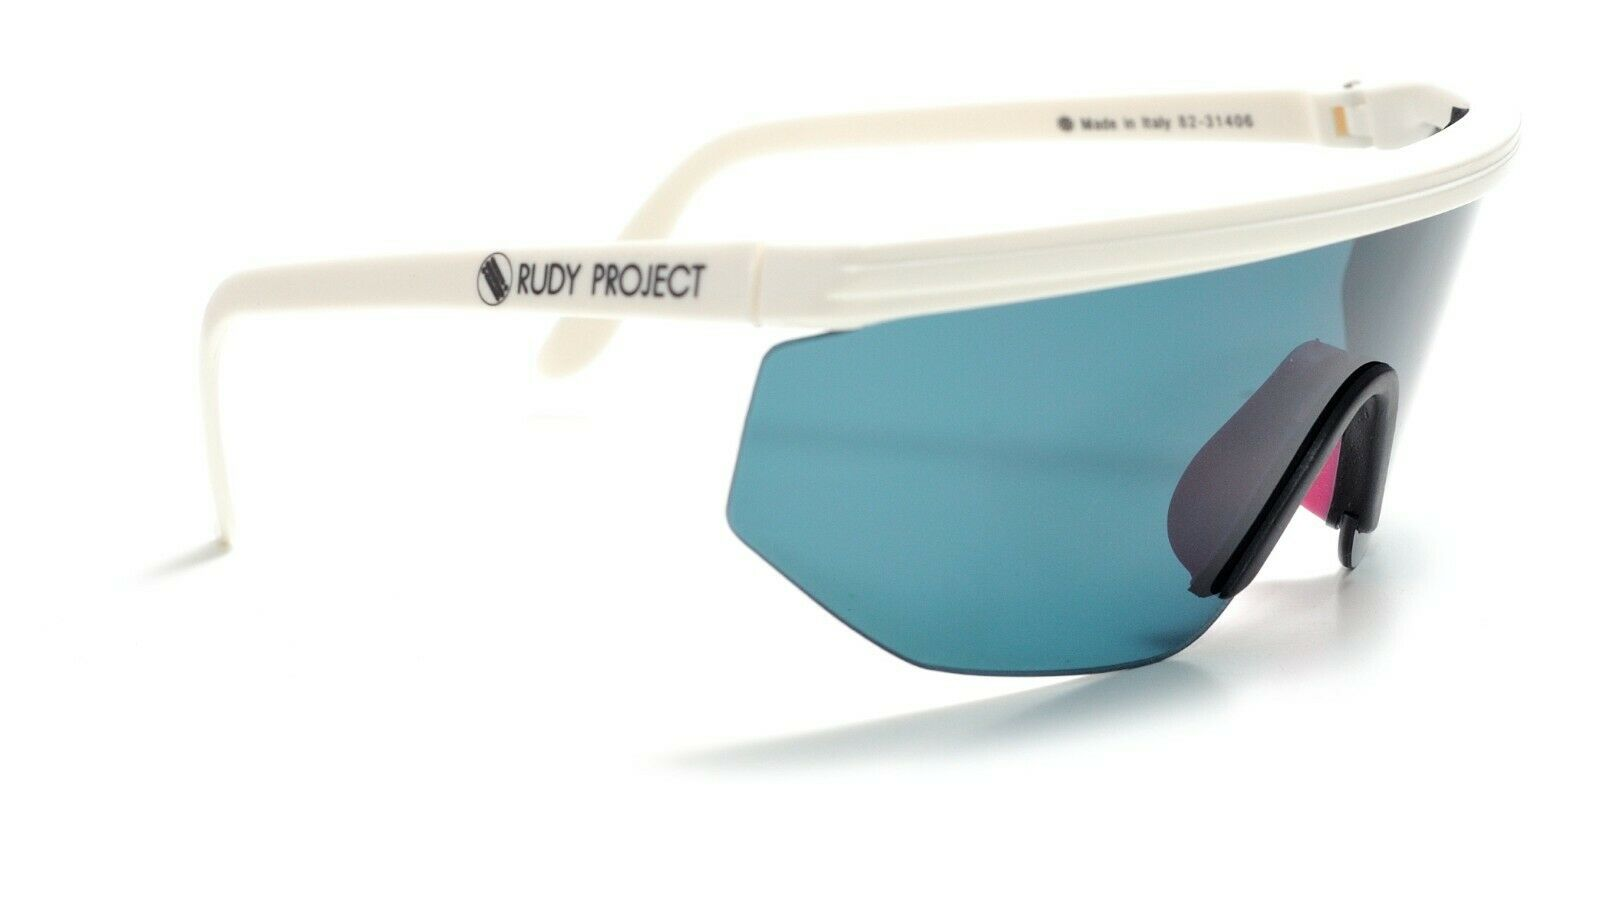 New NOS vintage Rudy Project Diffusion  cycling sunglasses 80's 90's  online retailers